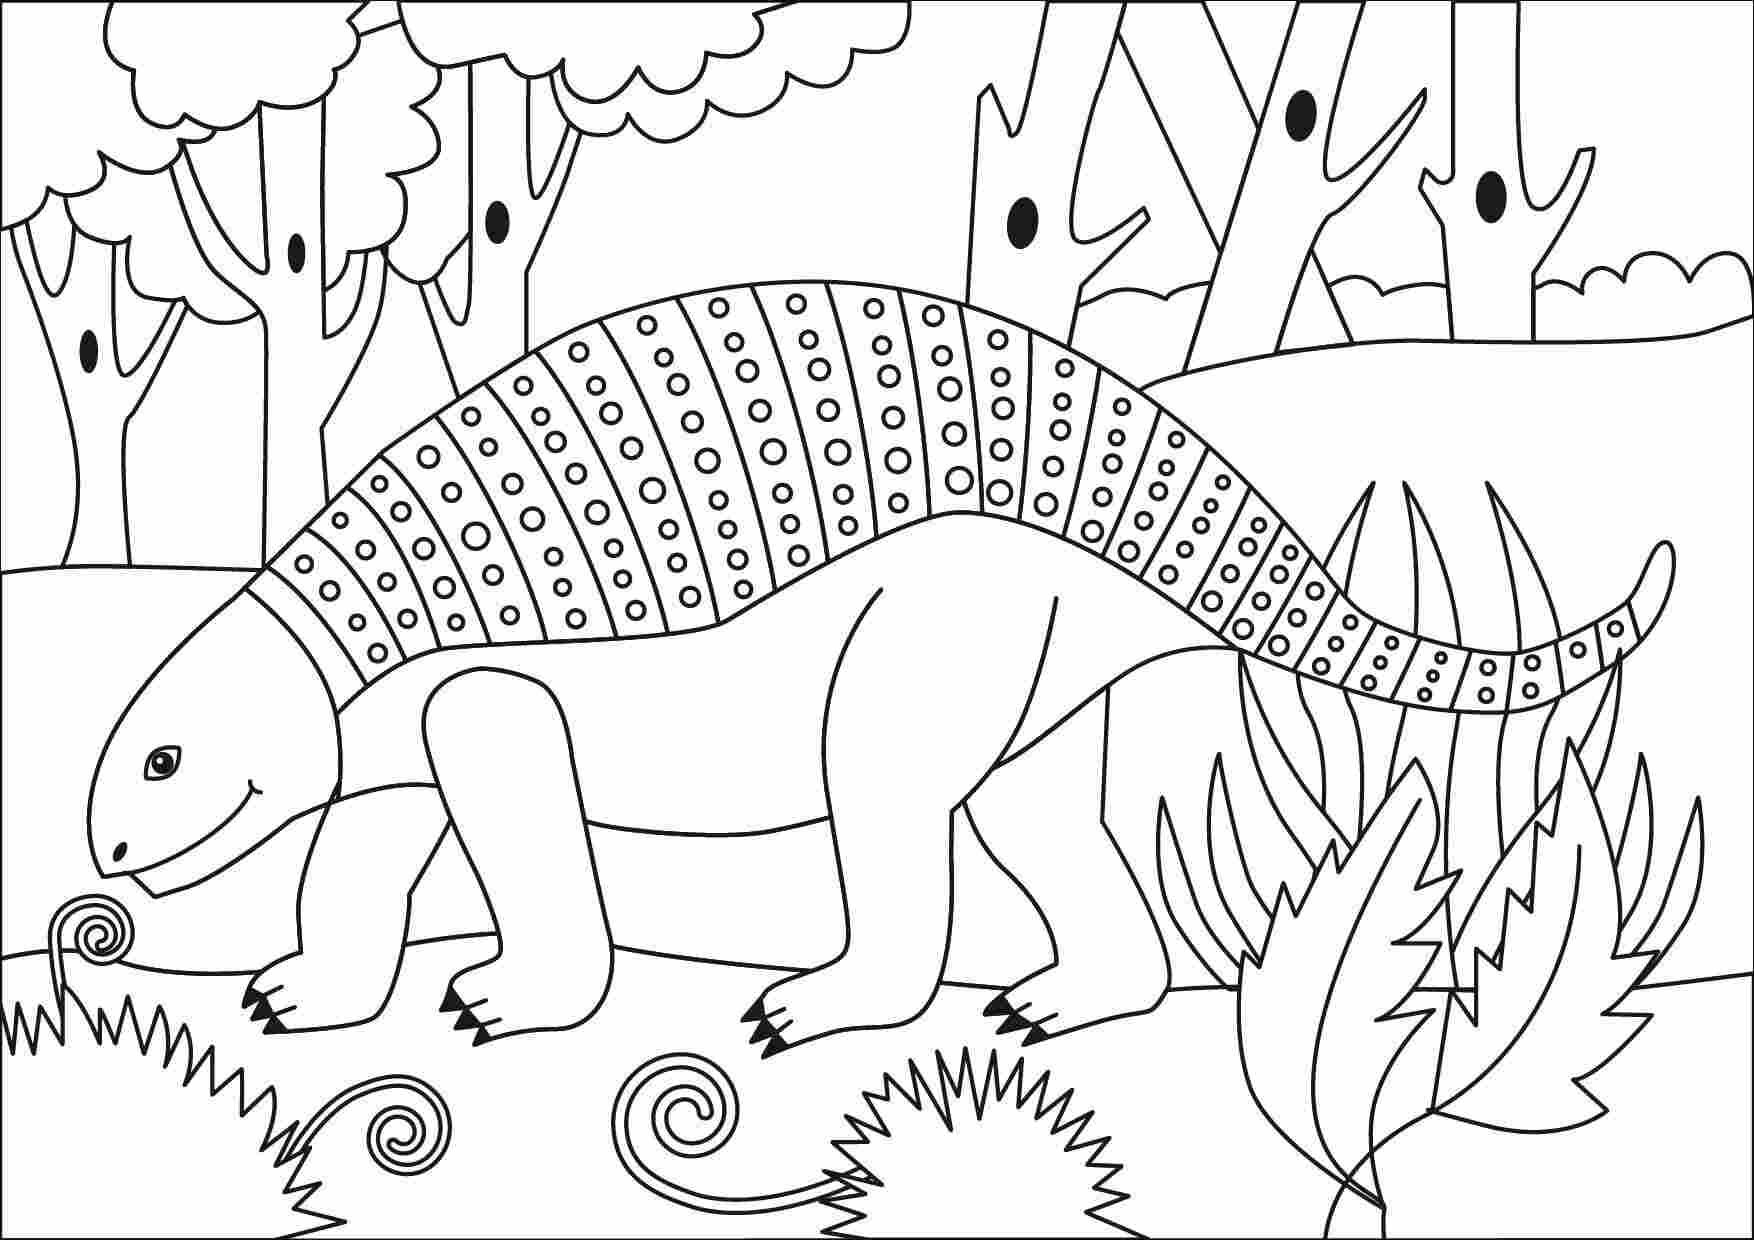 Nodosaurus which belongs Ankylosaurus Dinosaur type in the primary forest Coloring Page